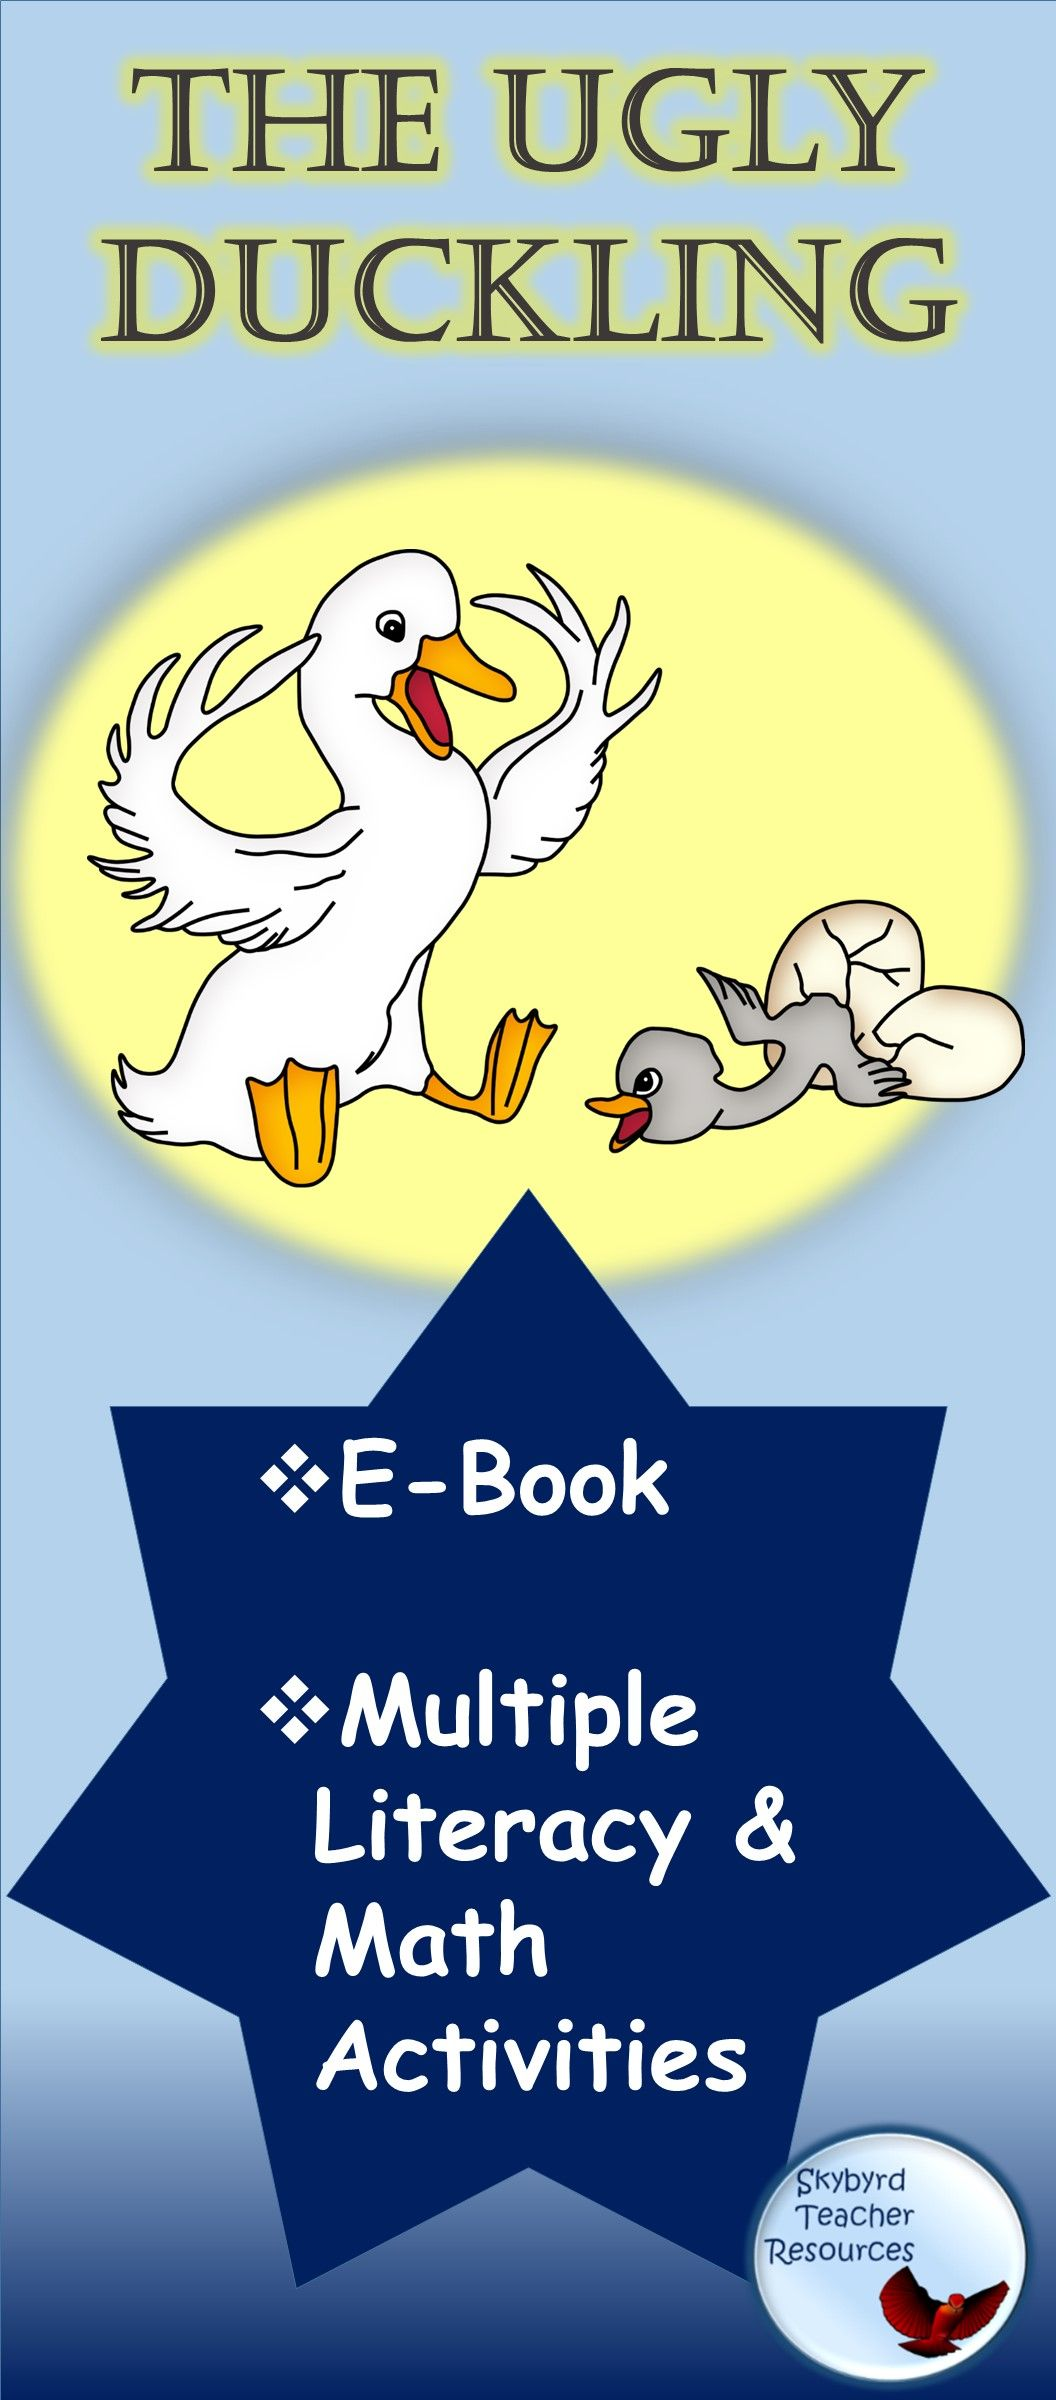 The Ugly Duckling Fable Literature And Math Activities